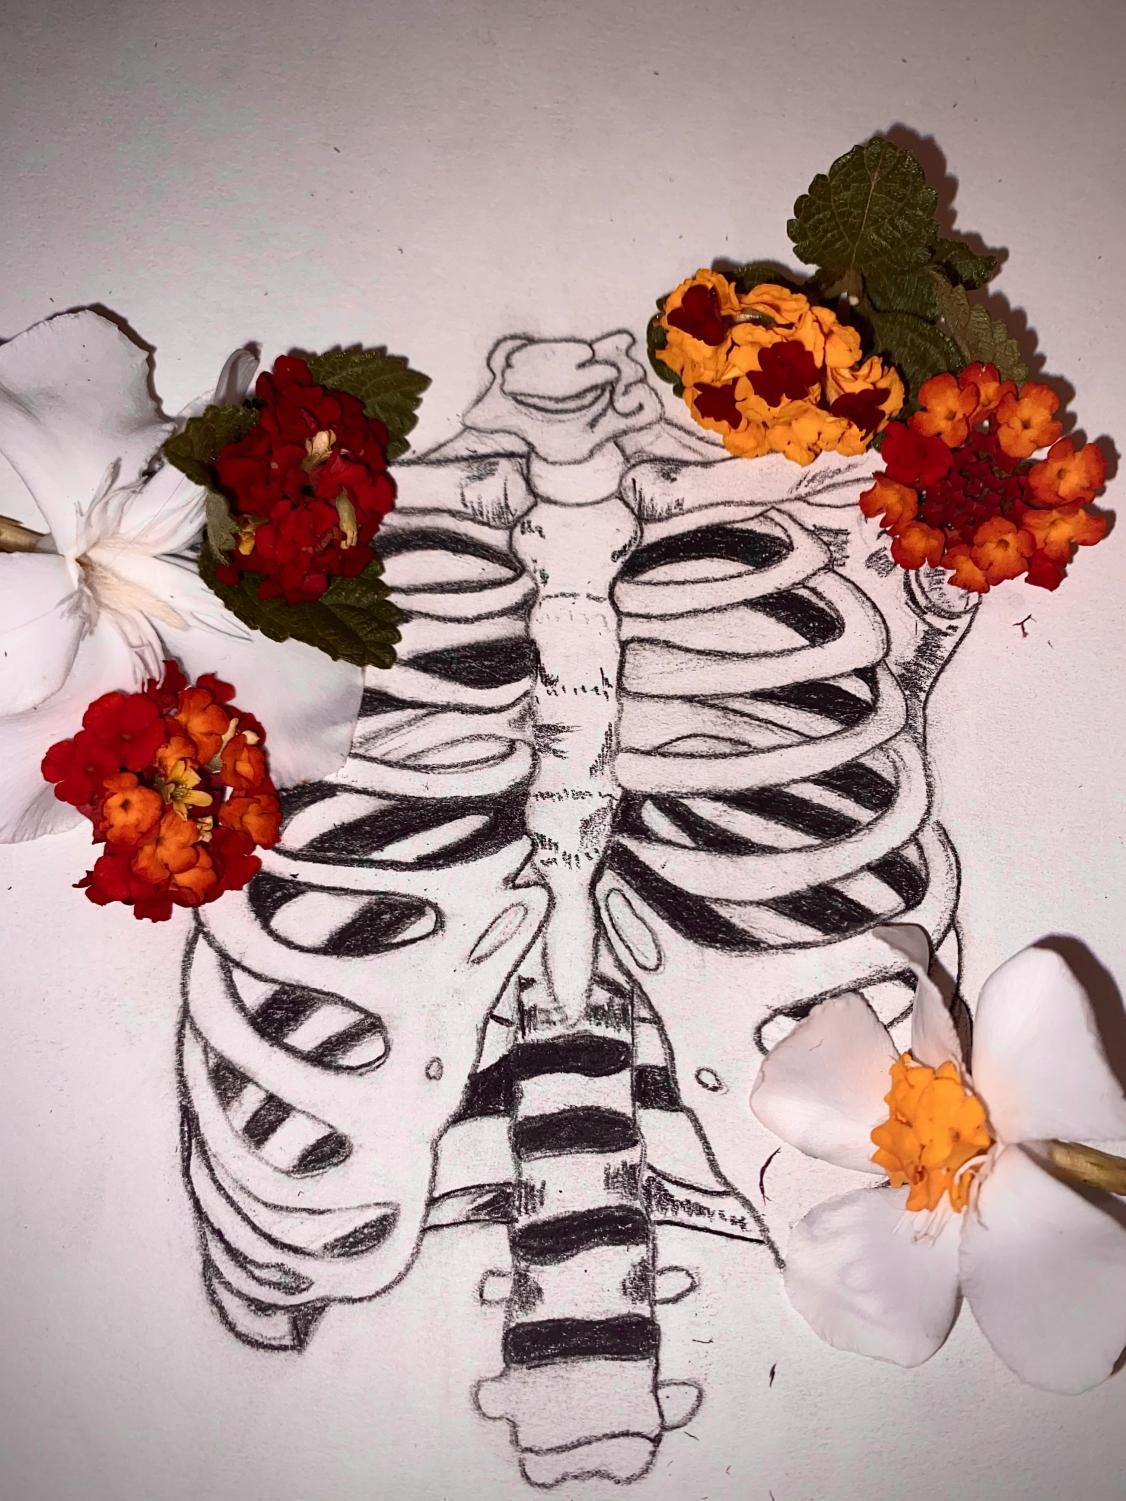 An Ode to a Ribcage